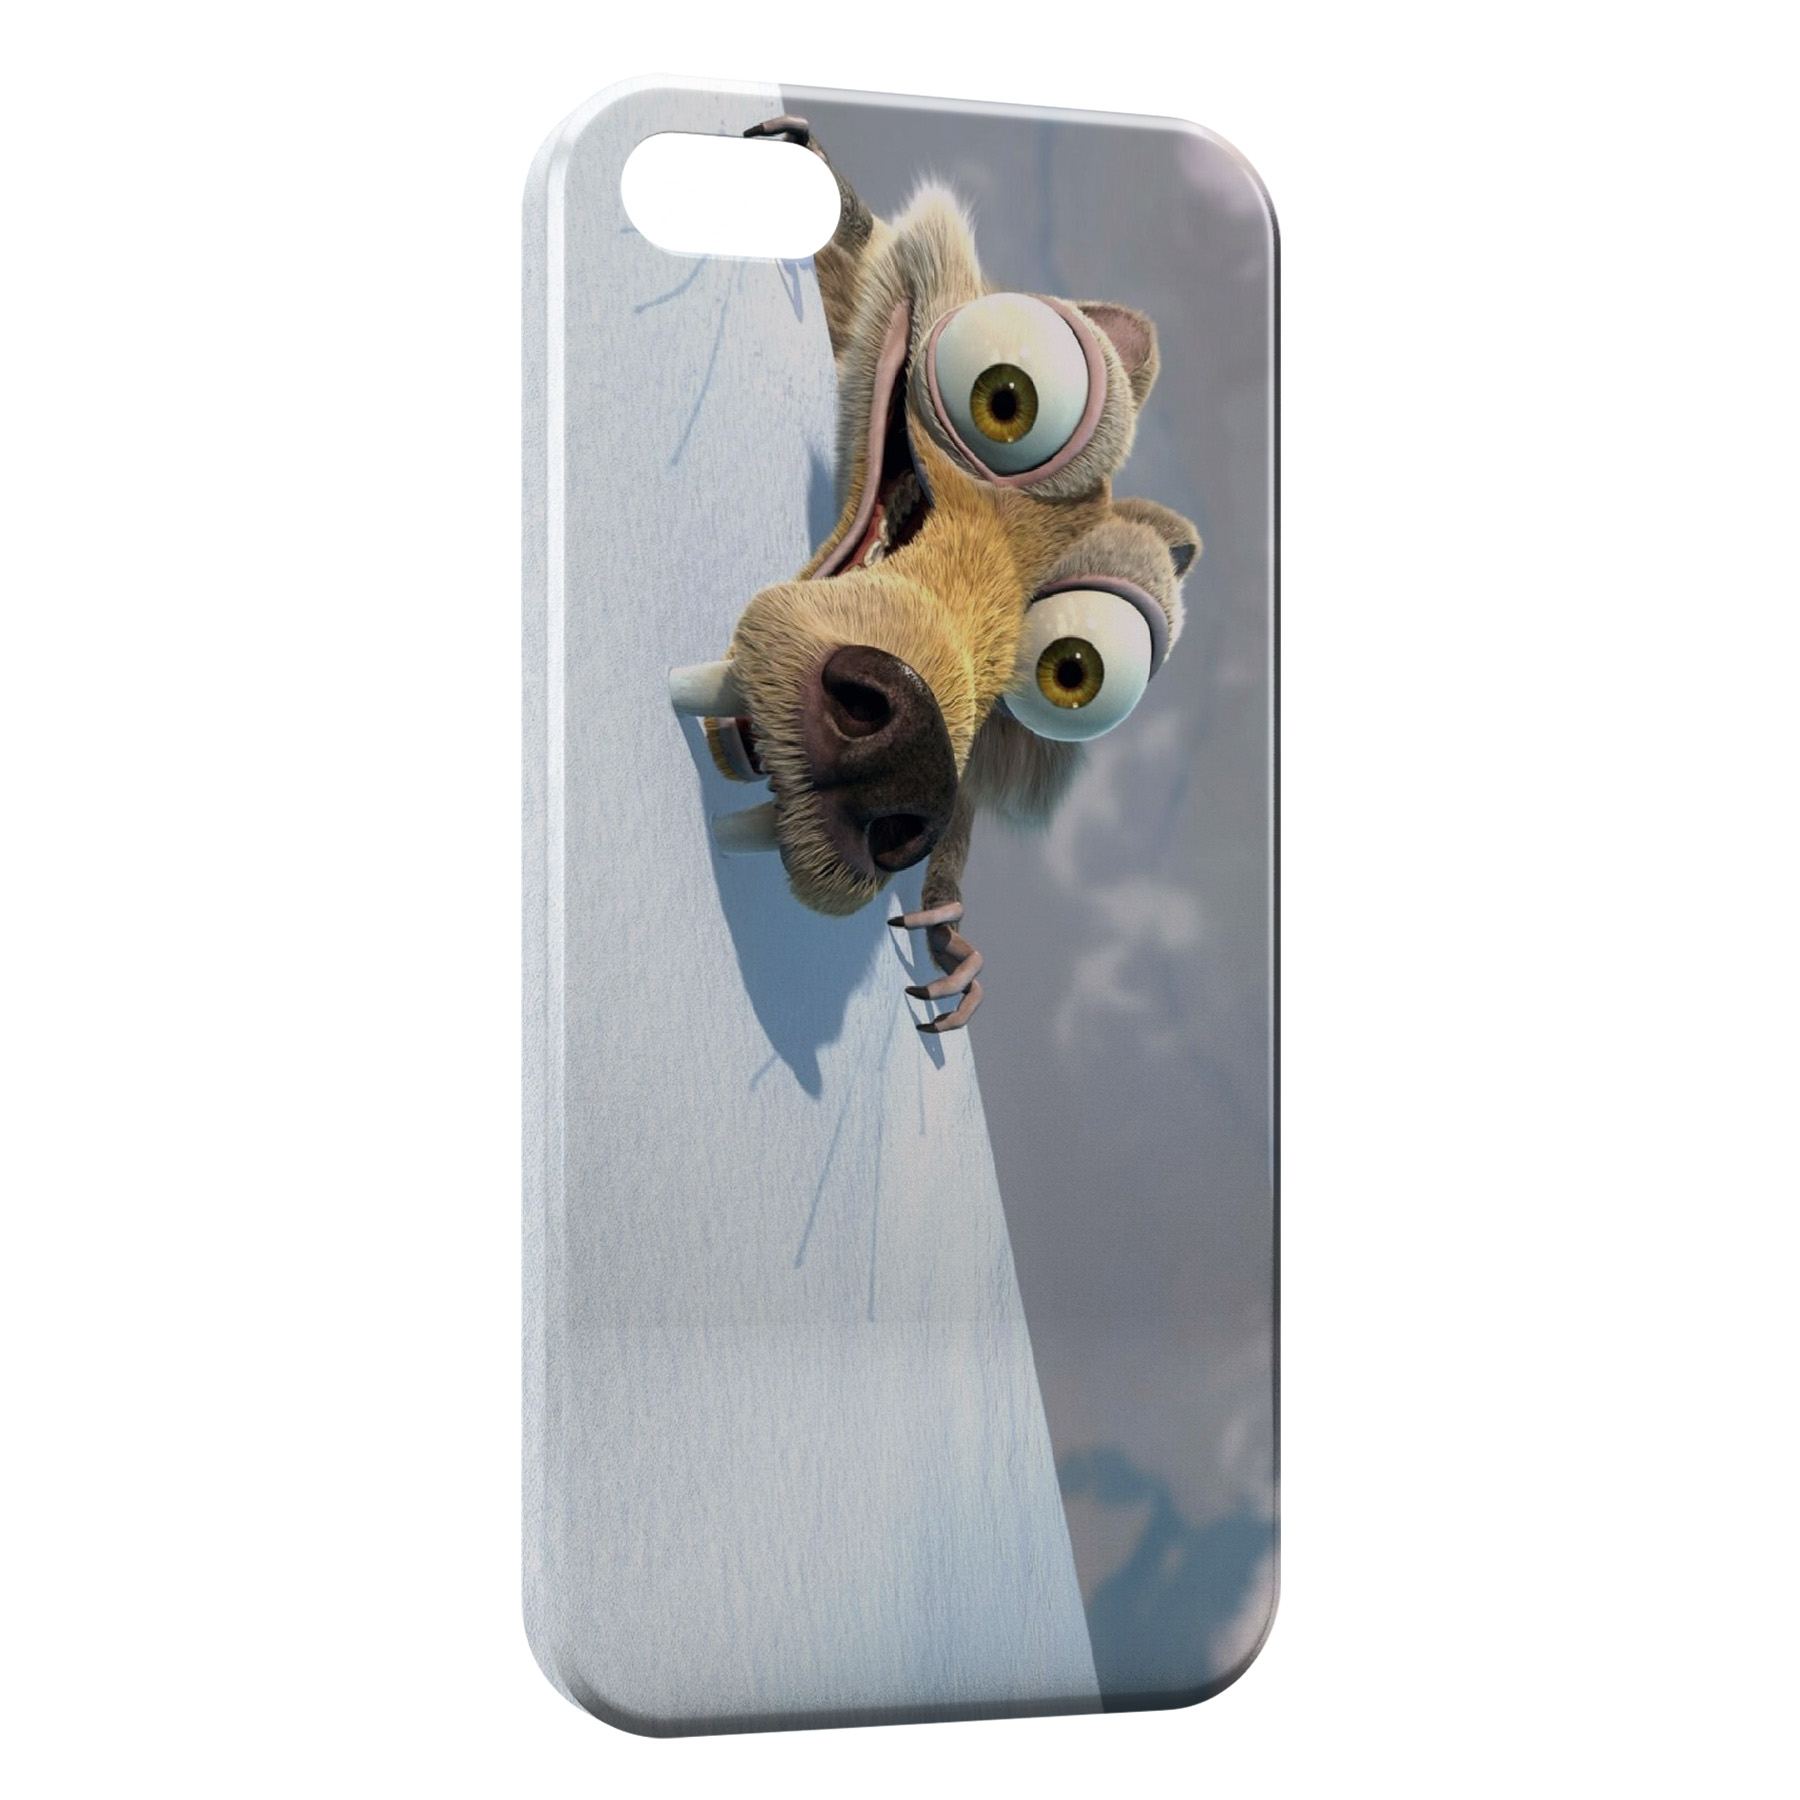 coque iphone 8 glace